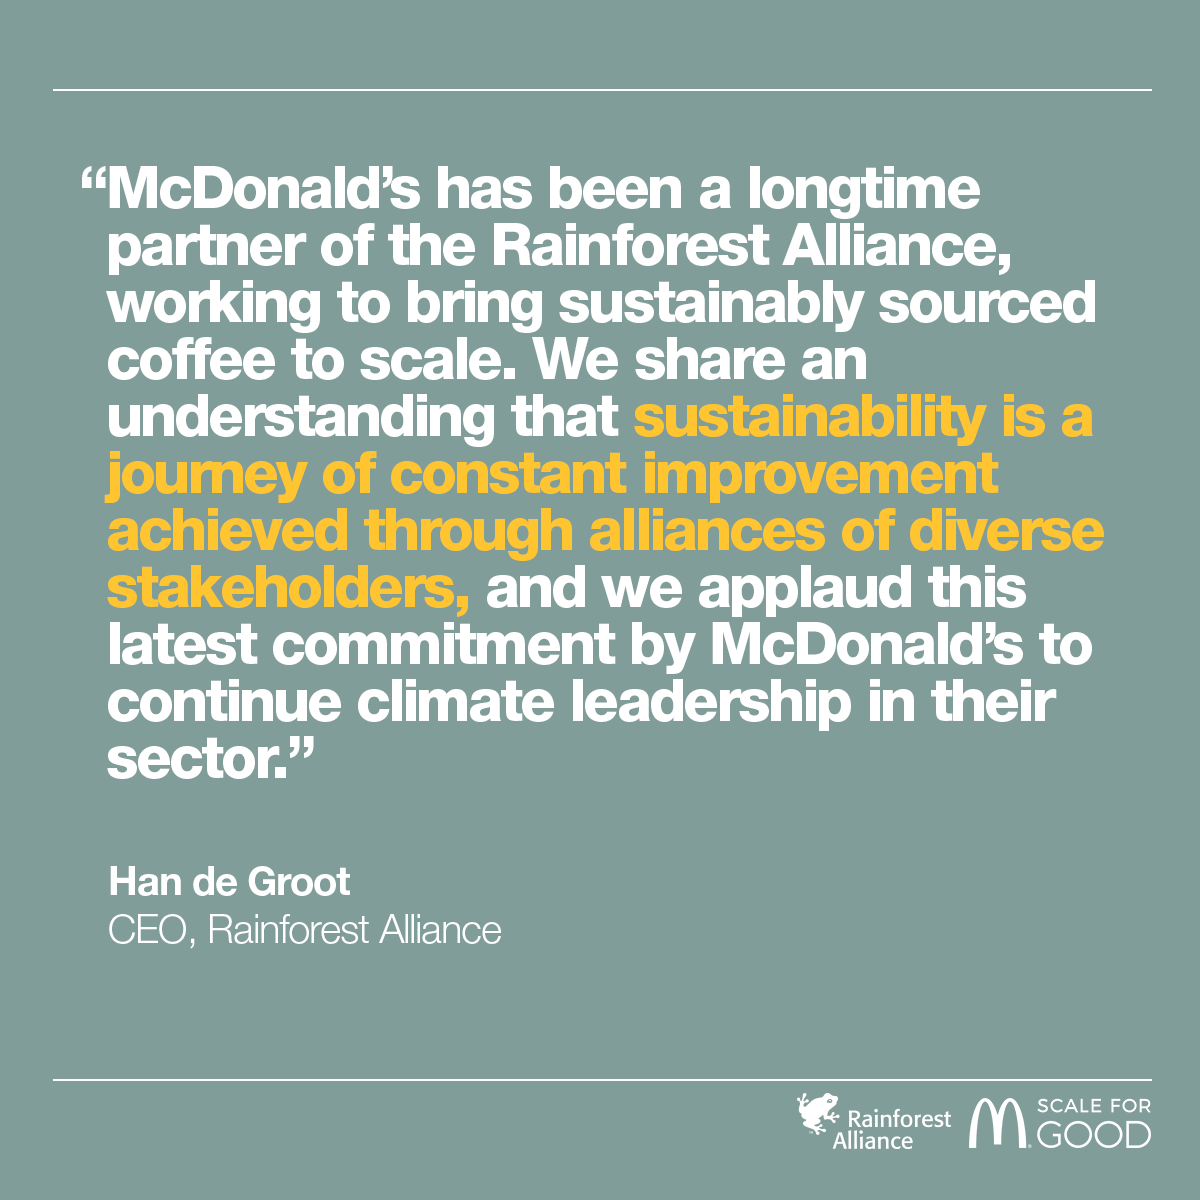 McDonalds_Stakeholders-Rainforest_1200x1200_03.20.18